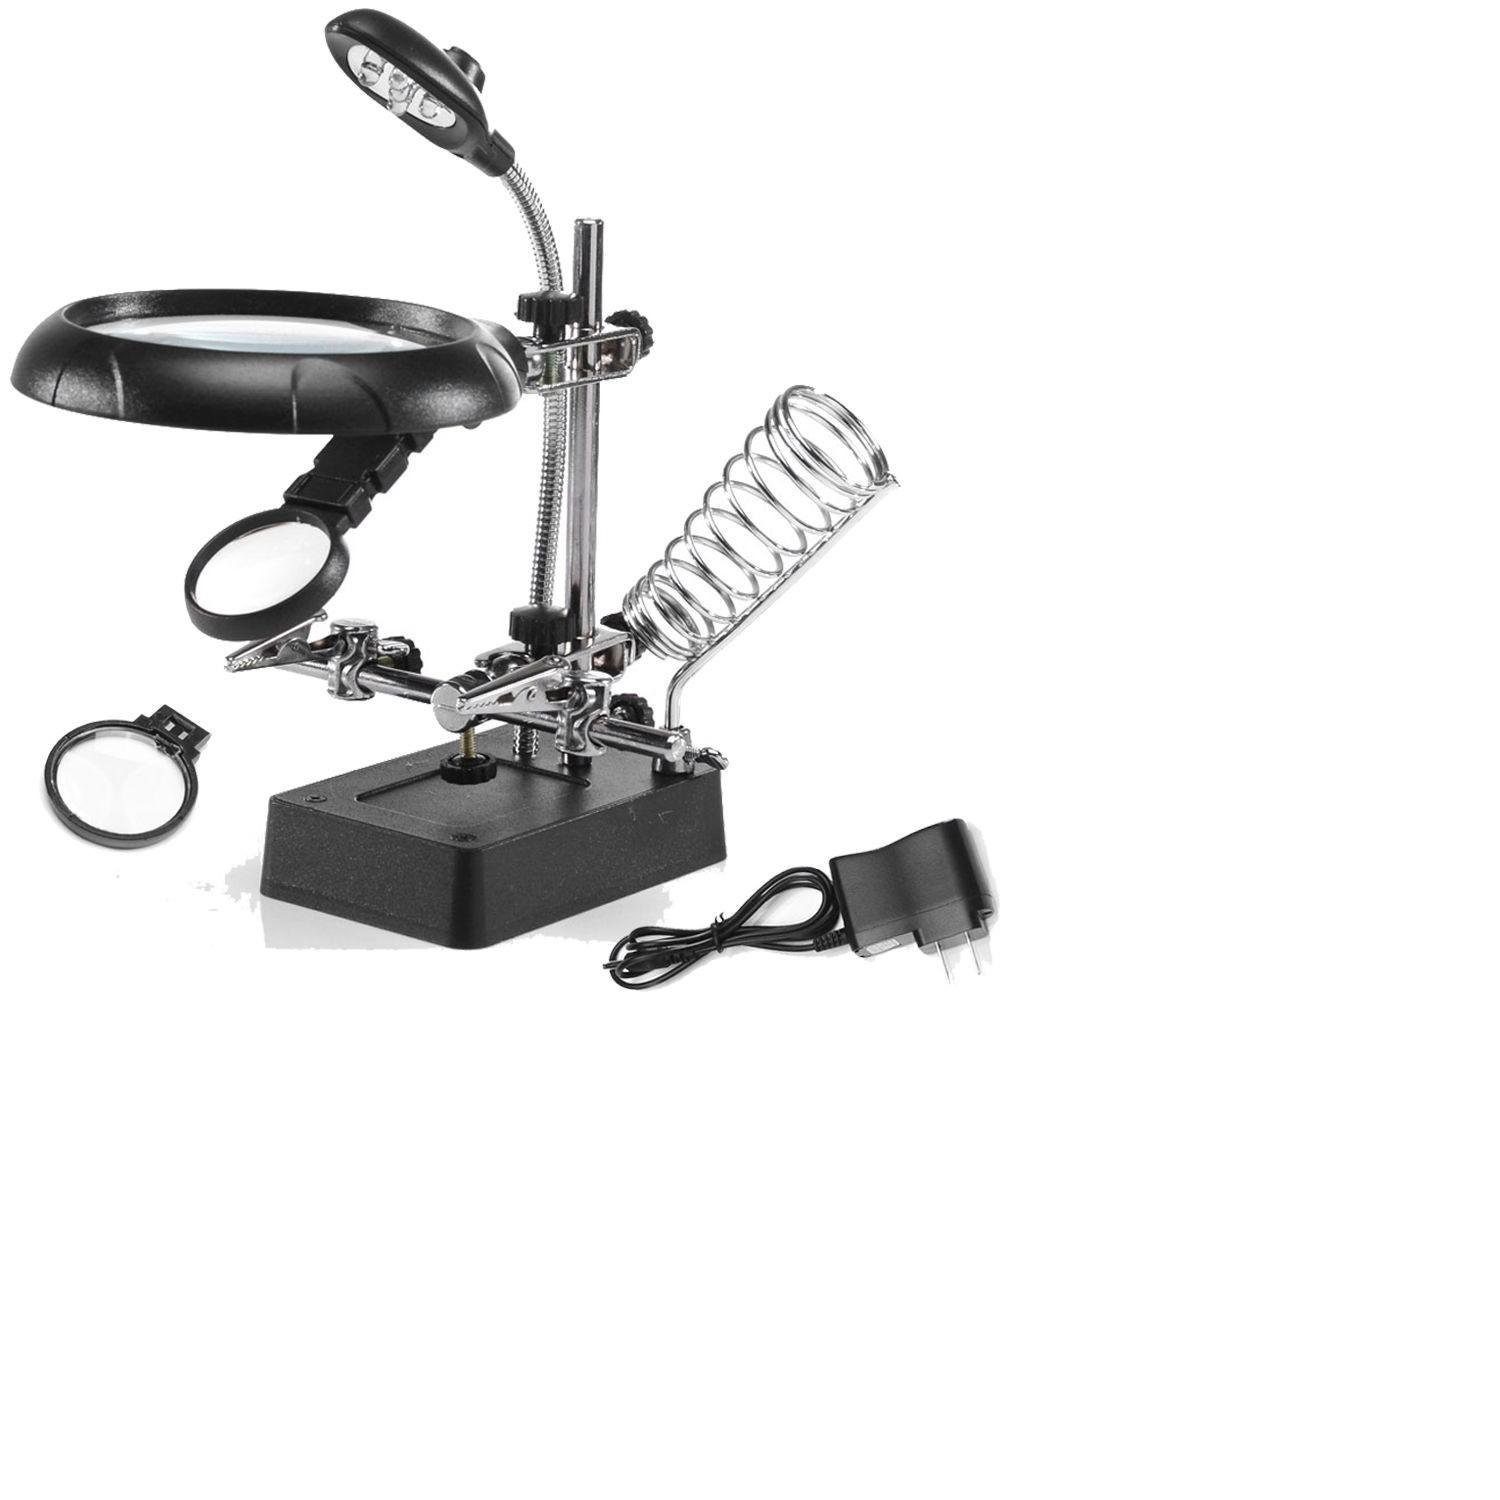 Helping Hand  LED Light Soldering Station Magnifier Station with Clamp and Clips Helping Hands